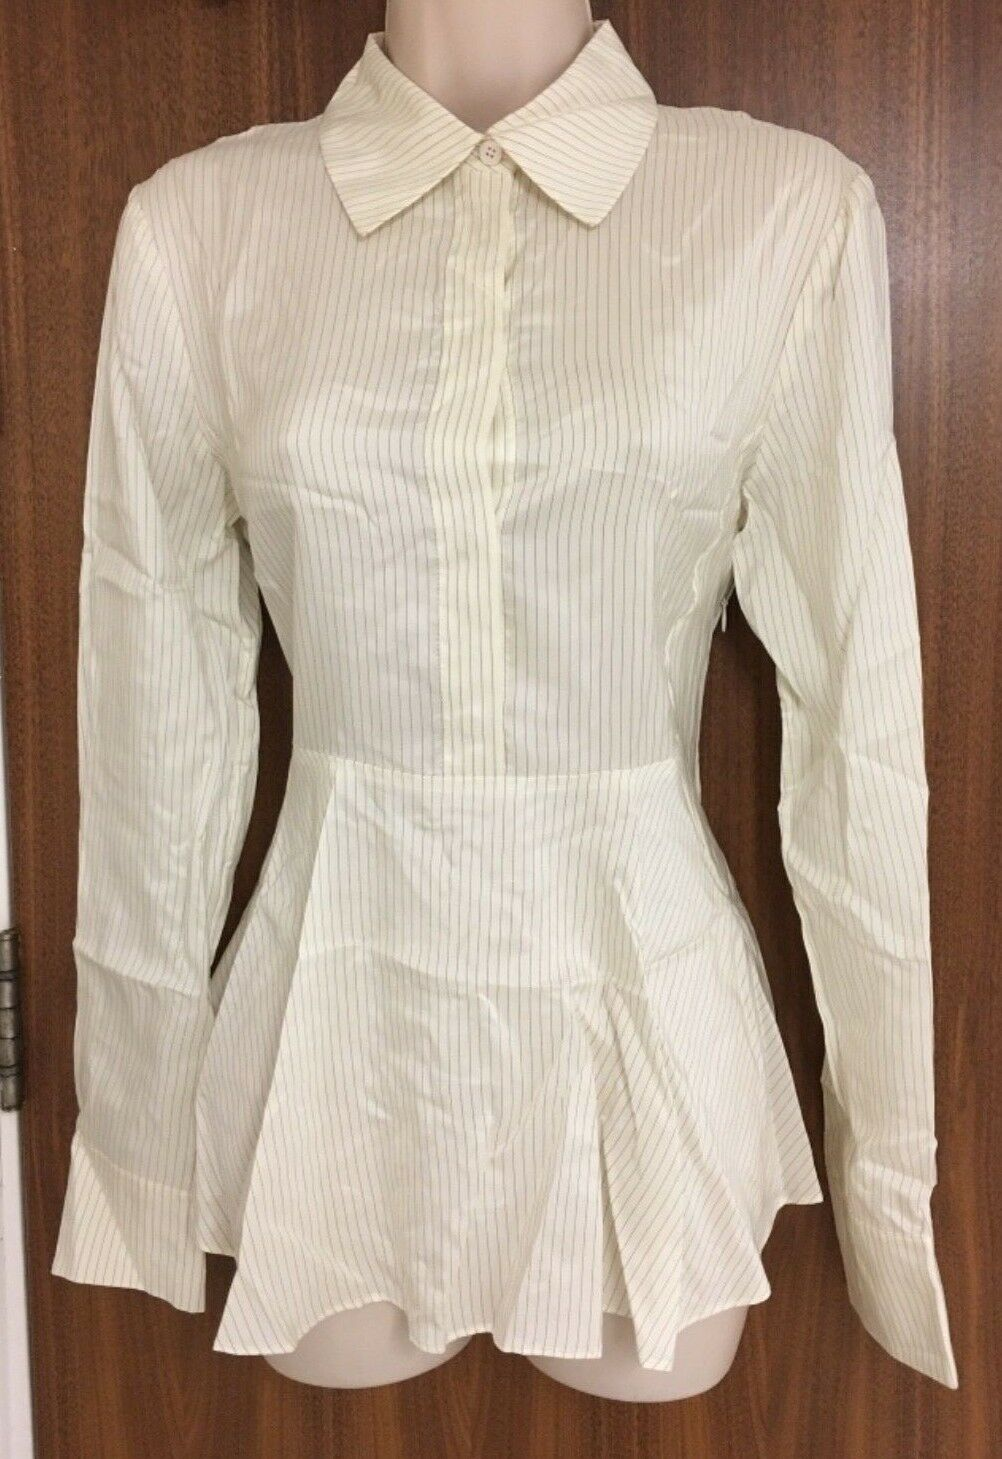 STELLA MCCARTNEY Ivory Silk Pinstripe Peplum Shirt  IT 38